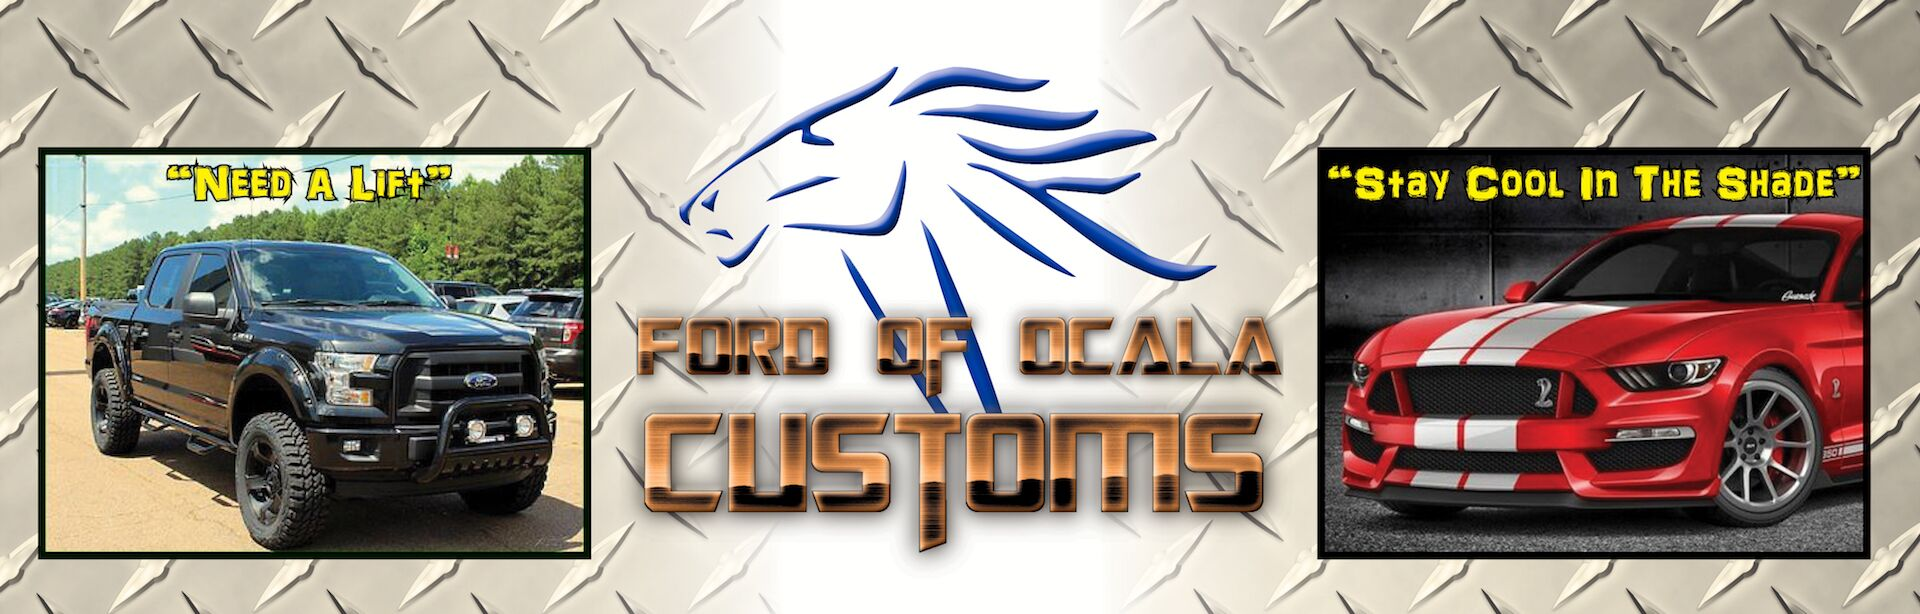 ford ocala customs